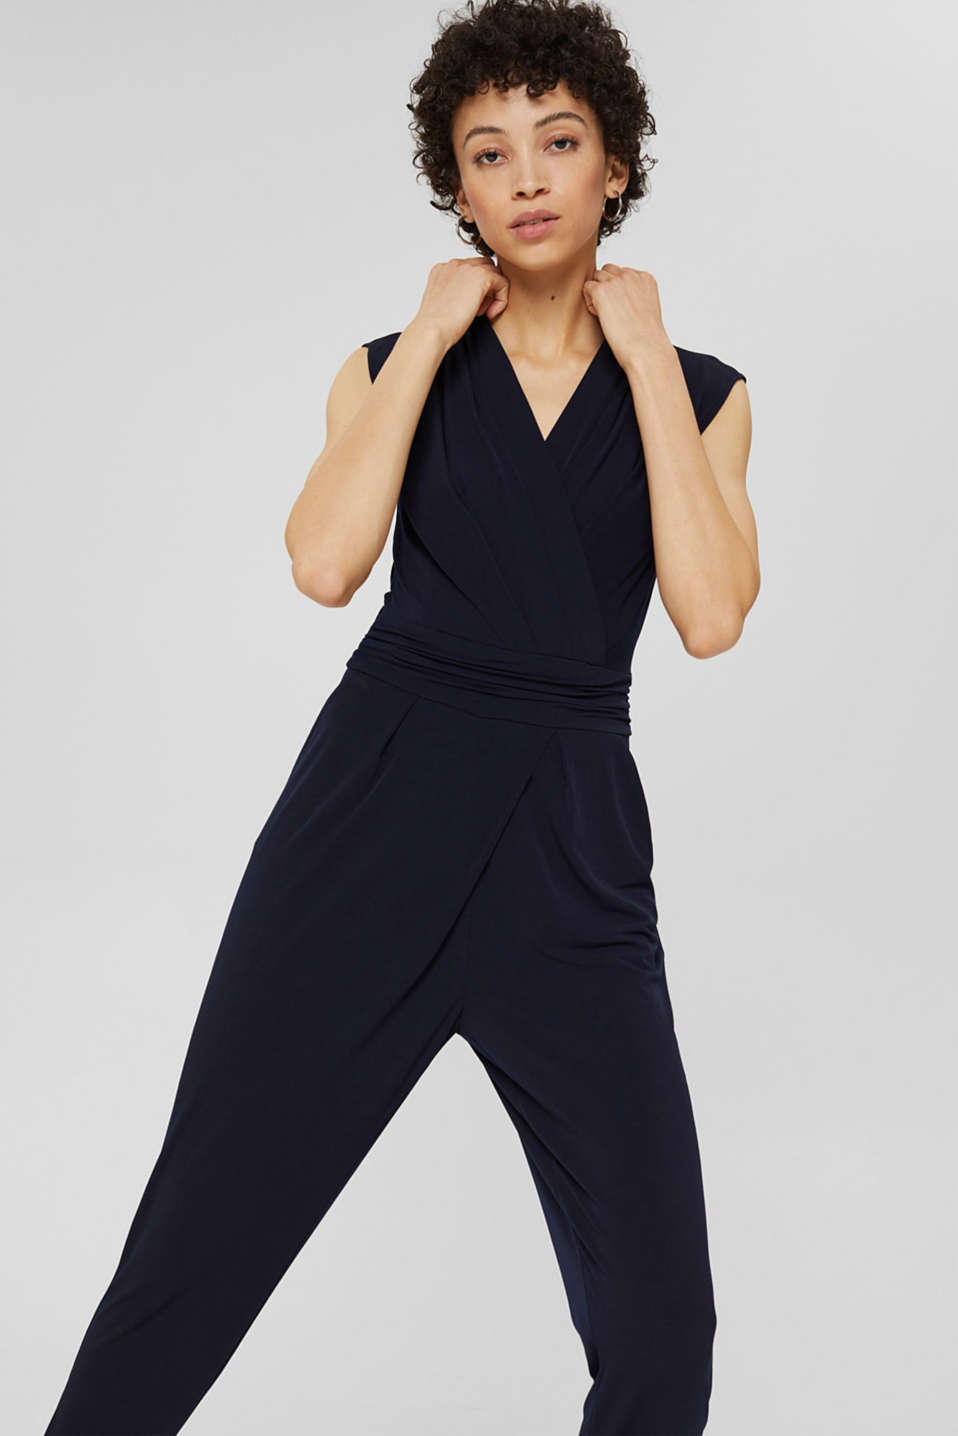 Esprit - Flowing, stretchy wrapover jumpsuit